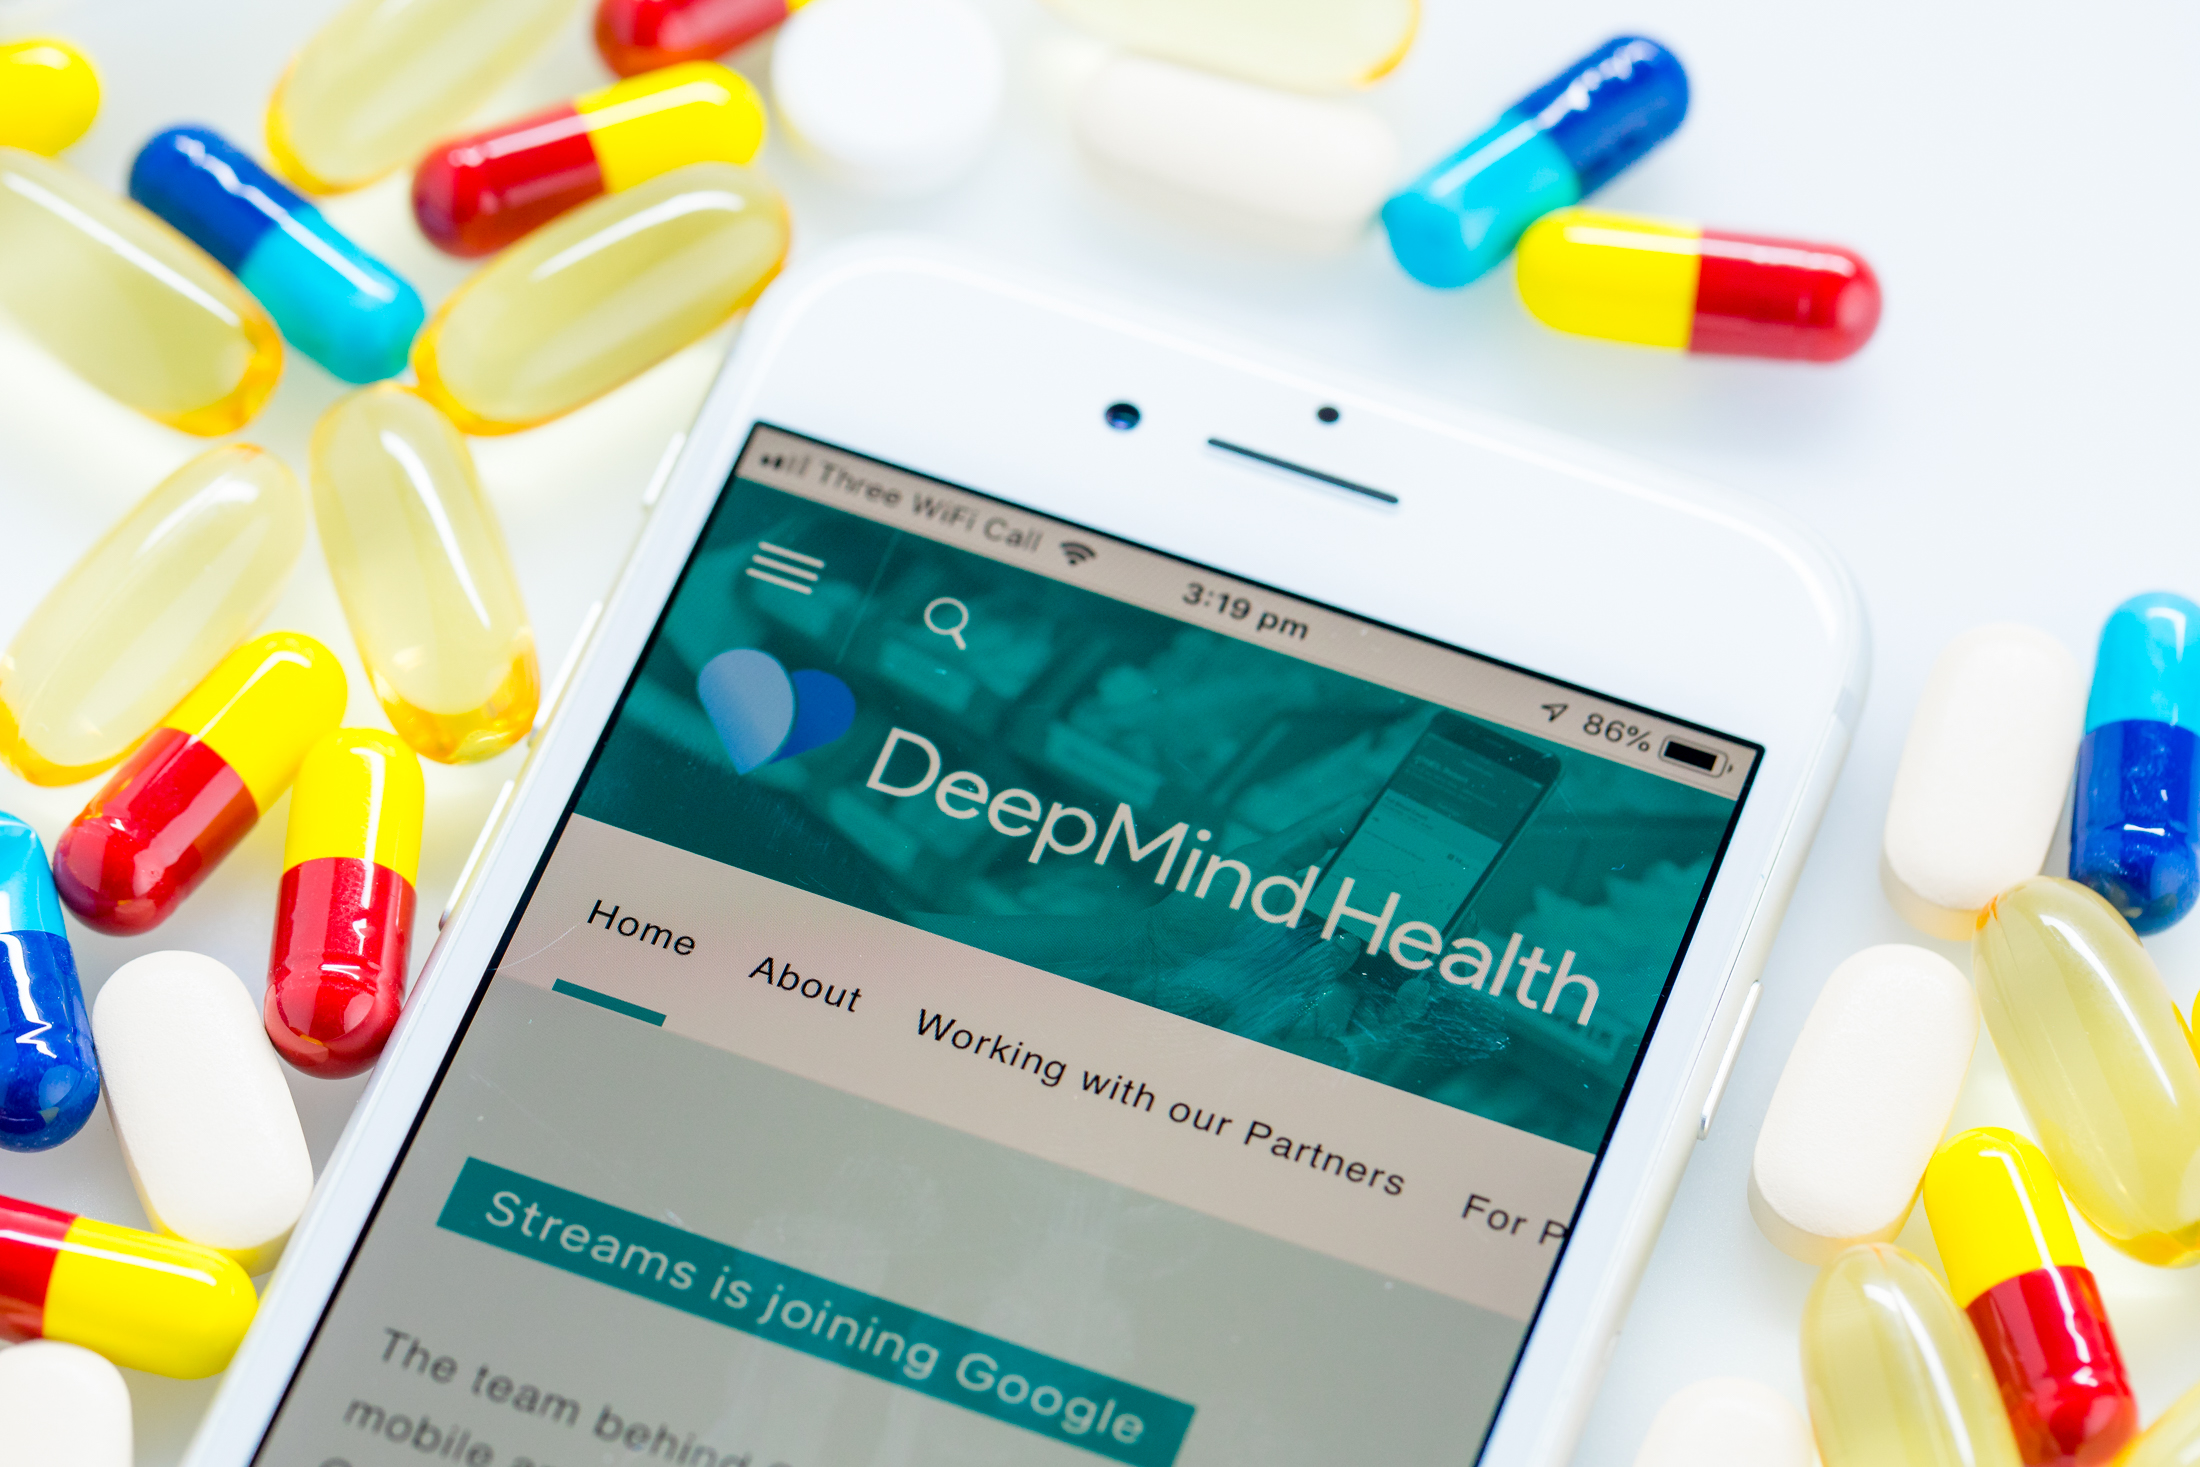 A Deepmind Health webpage sits displayed on the screen of an Apple Inc. iPhone in this arranged photograph in London, U.K. on Monday, Nov. 26, 2018. Three years ago, artificial intelligence company DeepMind Technologies Ltd. embarked on a landmark effort to transform health care in the U.K. Now plans by owner Alphabet Inc. to wrap the partnership into its Google search engine business are tripping alarm bells about privacy.